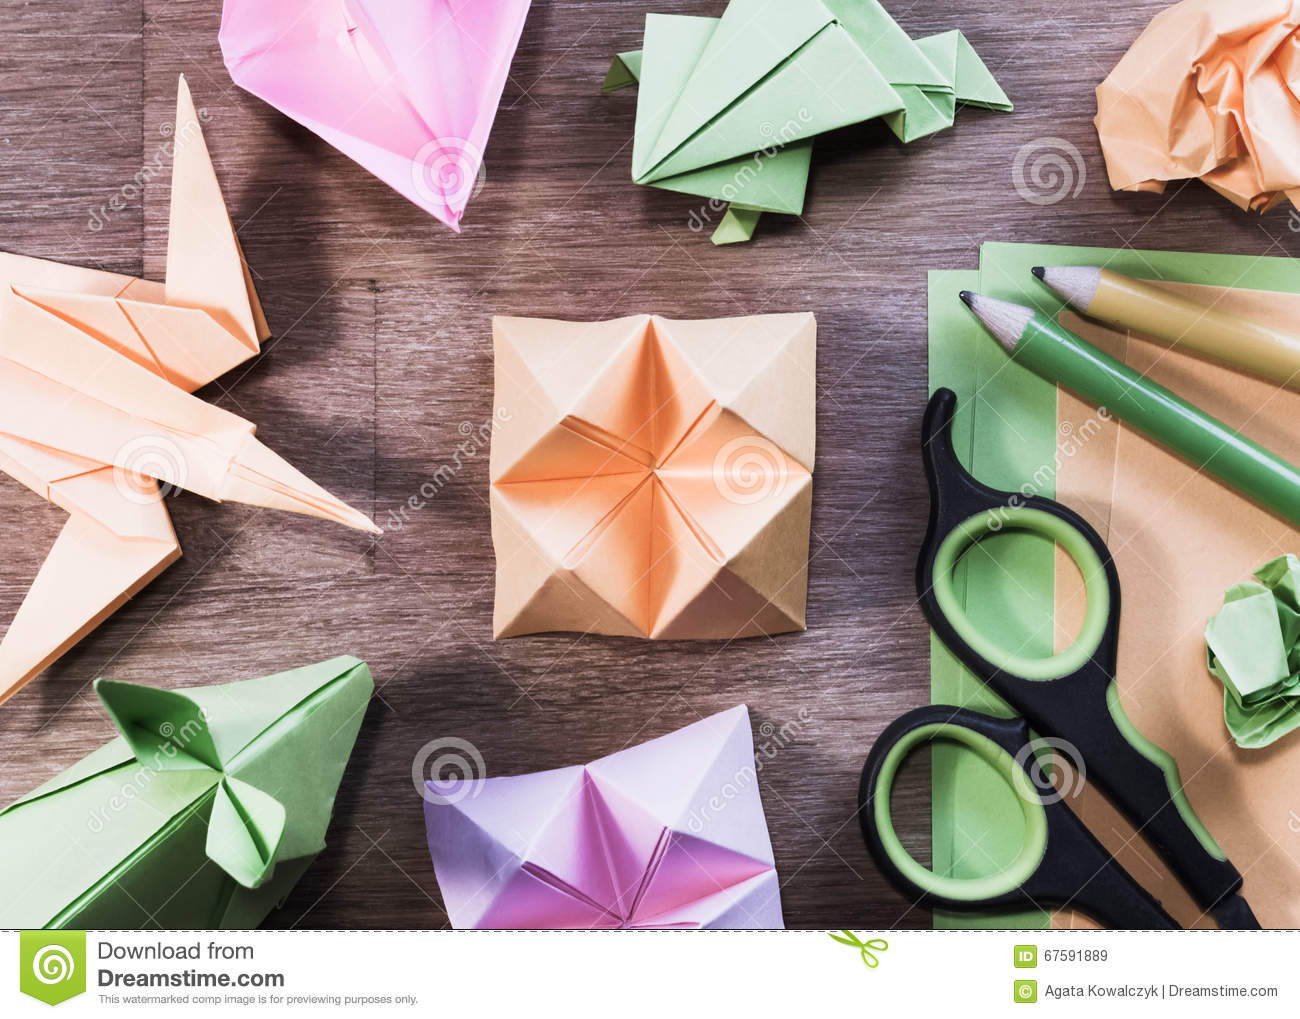 Origami Figures On Wooden Table Flat Lay High Angle View Stock